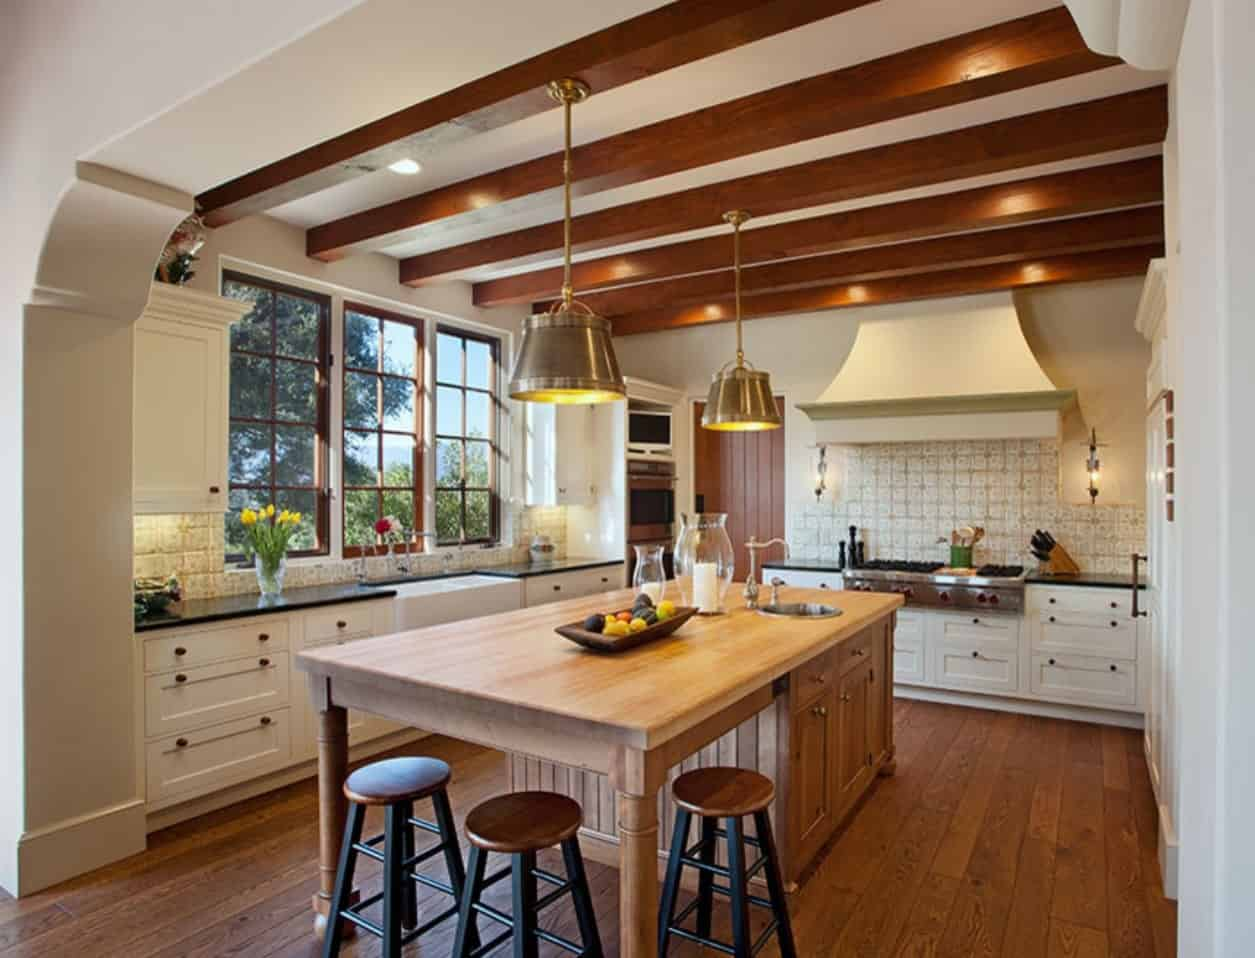 The white ceiling is adorned with exposed wooden beams, recessed lights and a couple of brass dome pendant lights that hang over the wooden kitchen island. This blends with the hardwood flooring and contrasts the shaker cabinets with black handles.